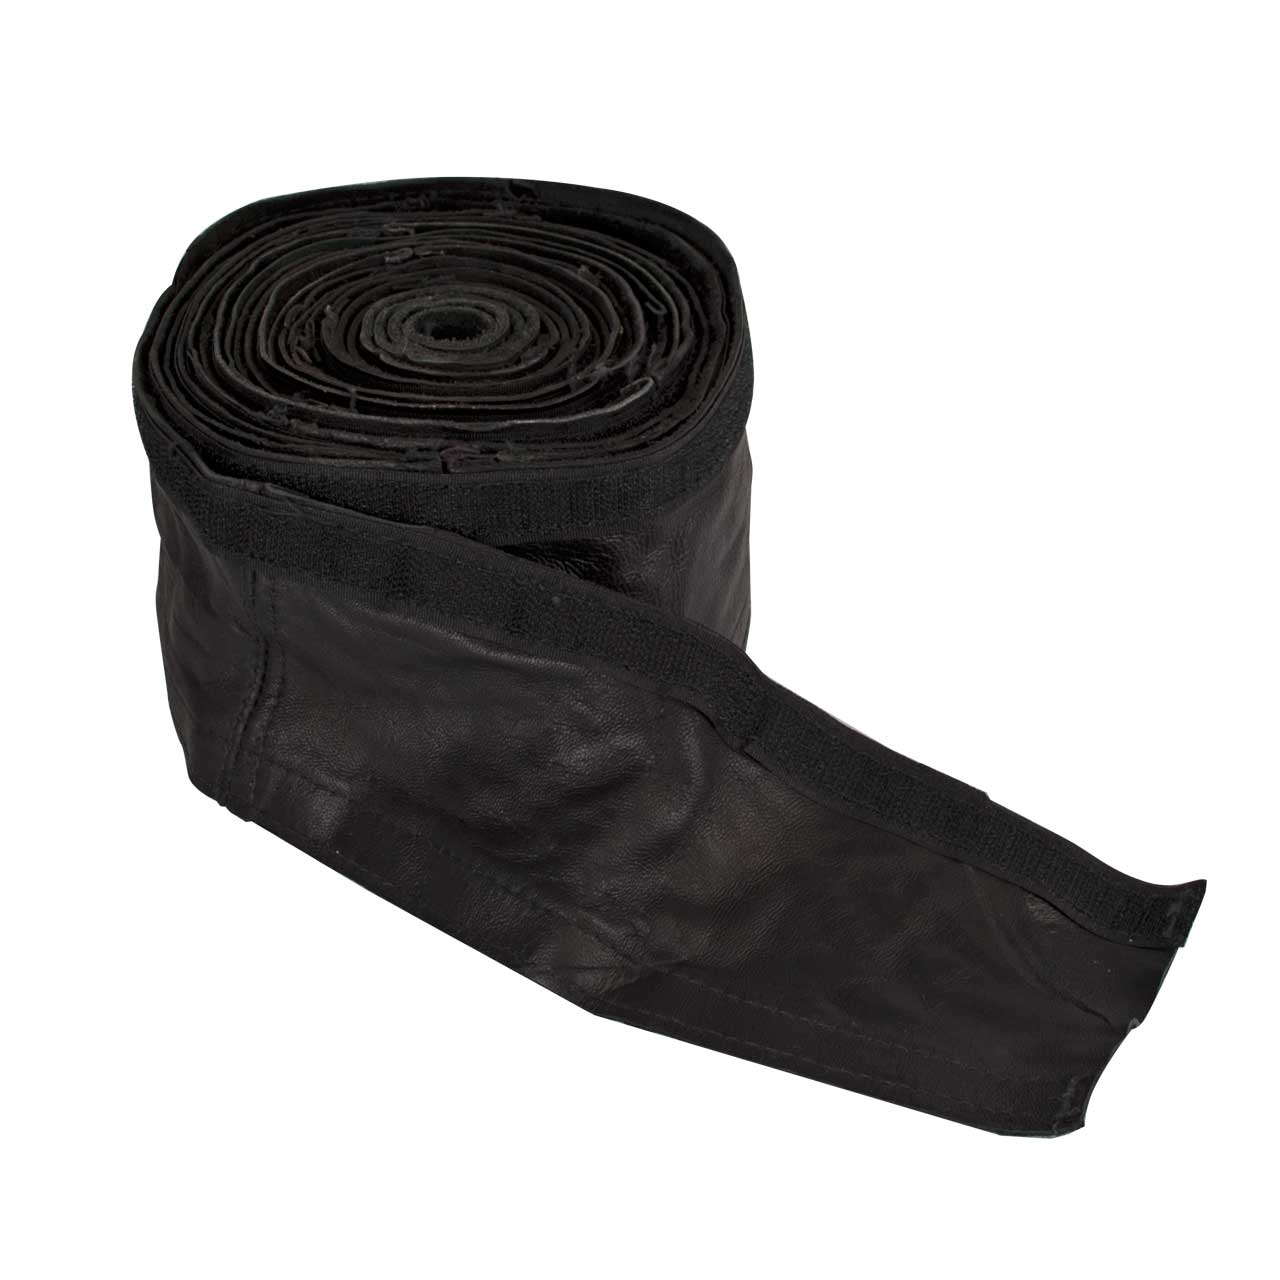 "CK 225HCLV Hose Cover 22' Leather w/ Hook and Loop (3-3/4"")"